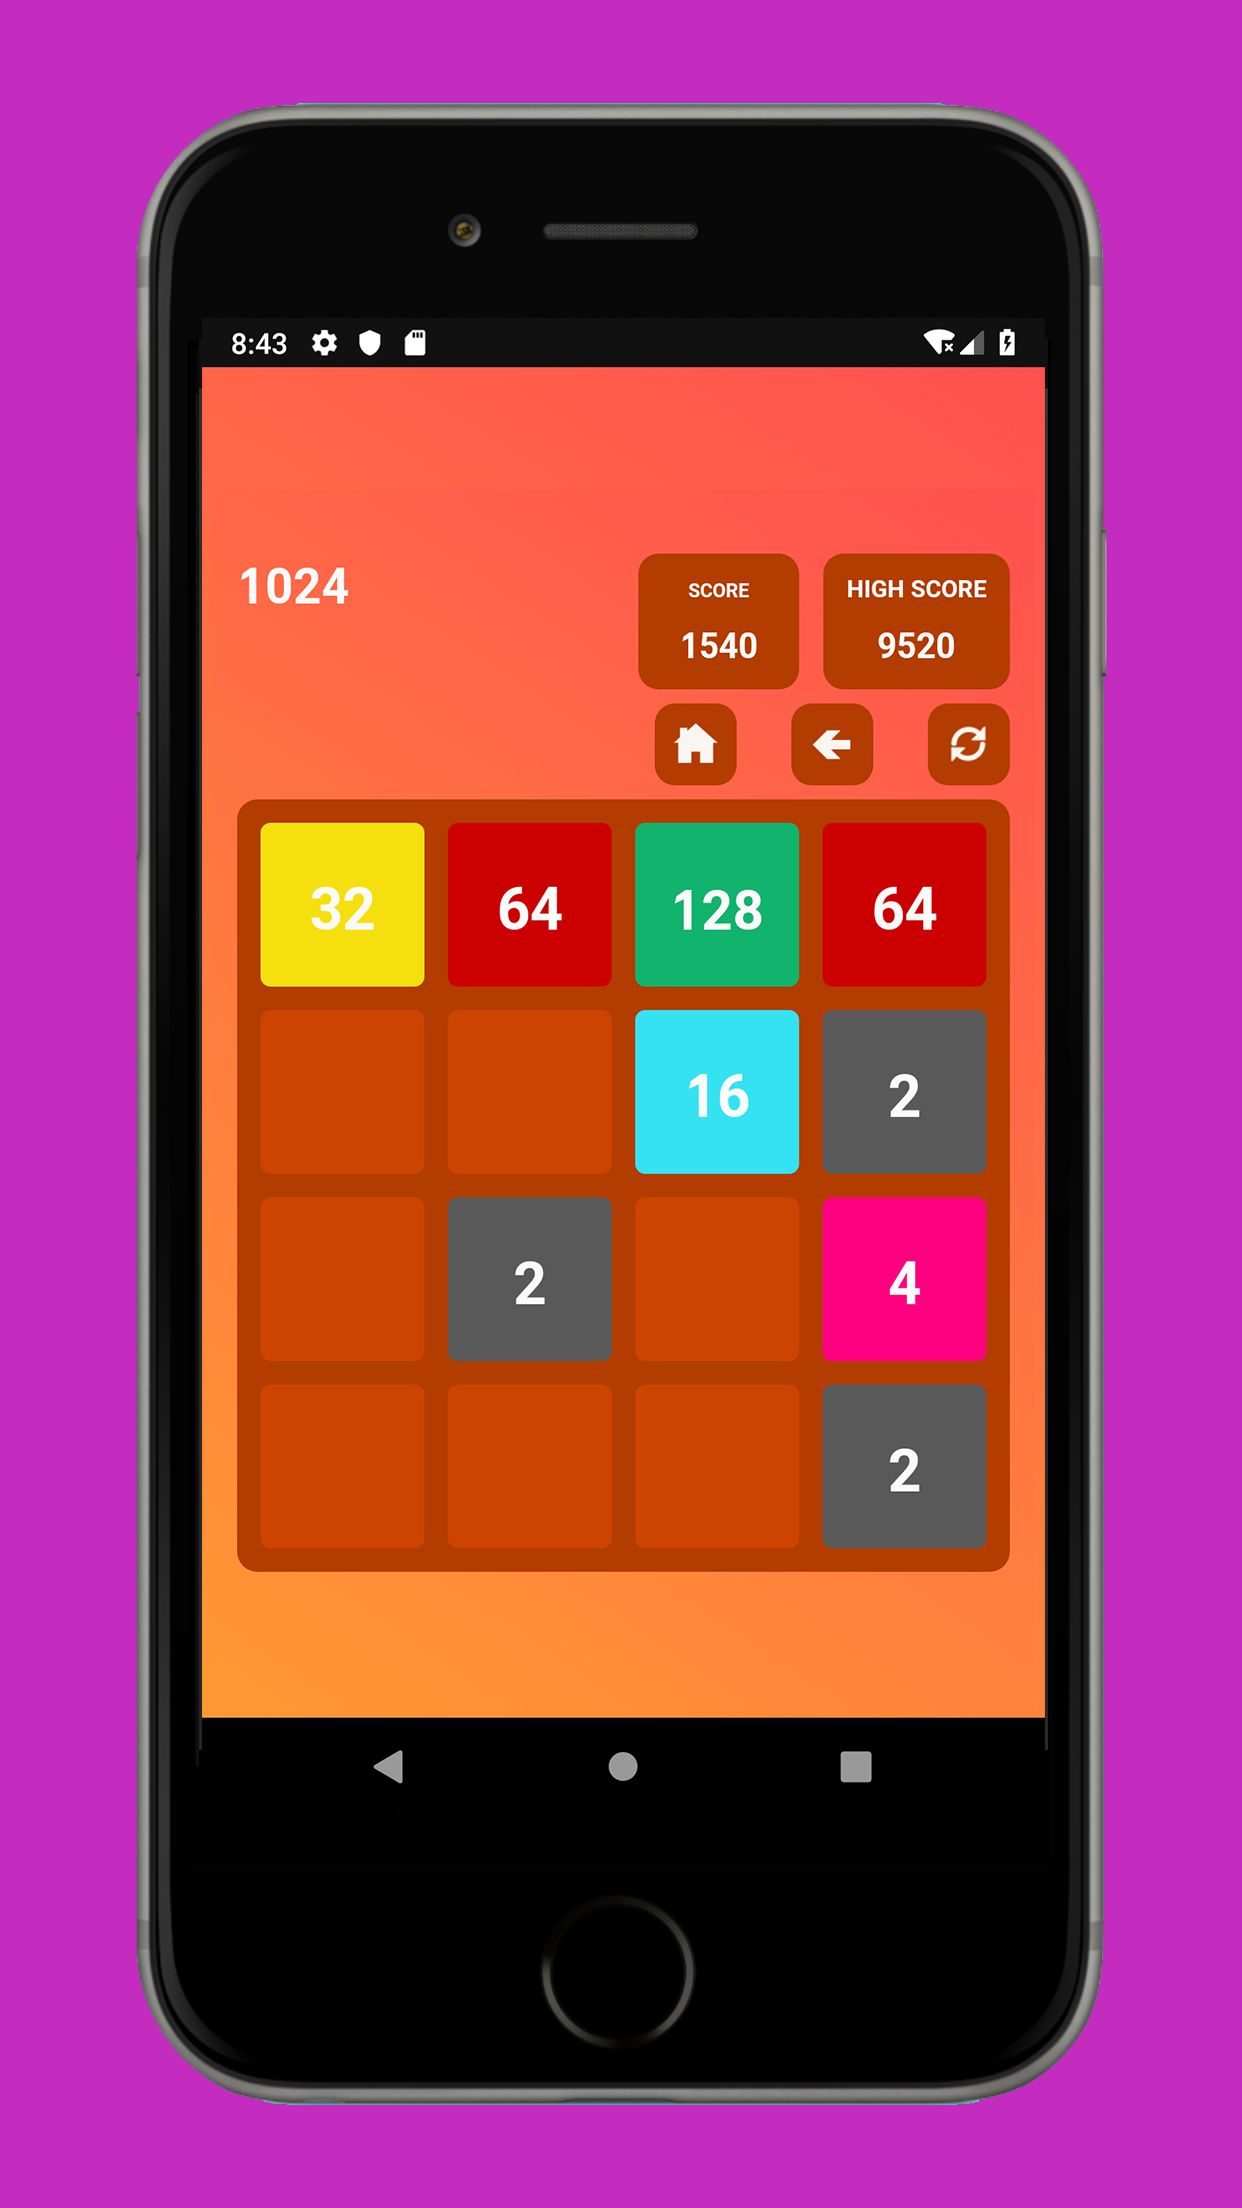 Swipe Game Version Basic - Android Template Screenshot 7